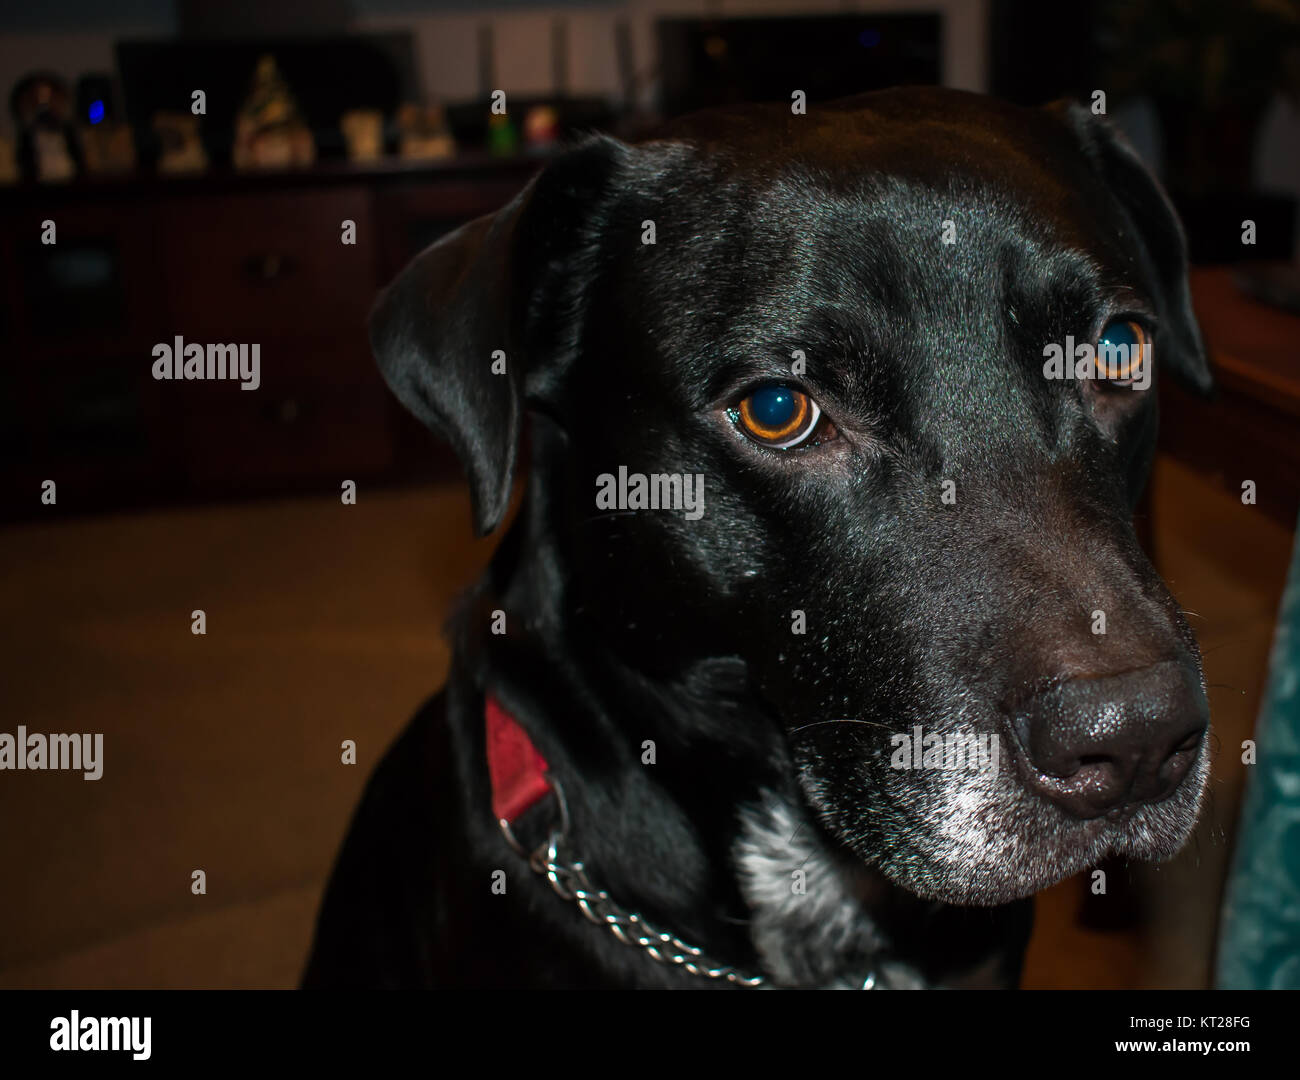 Portrait of a sitting black dog looking cute - Stock Image